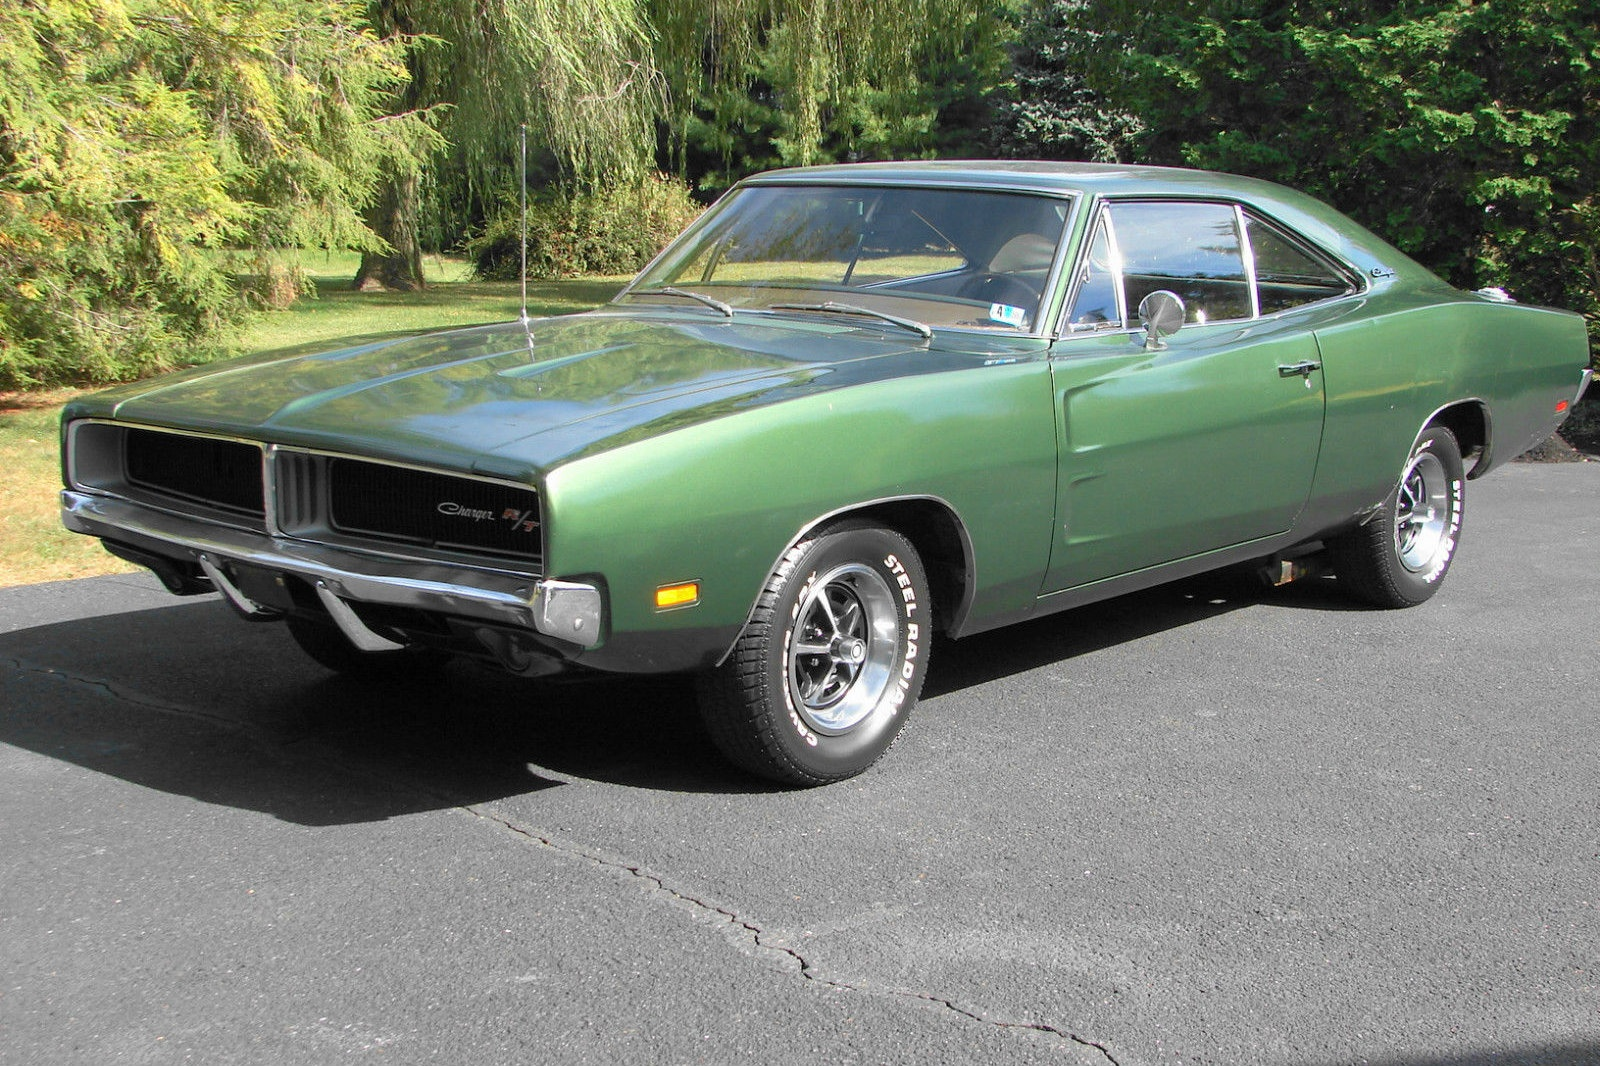 Dodge Charger List >> Rescued! 1969 Charger 440 4-Speed